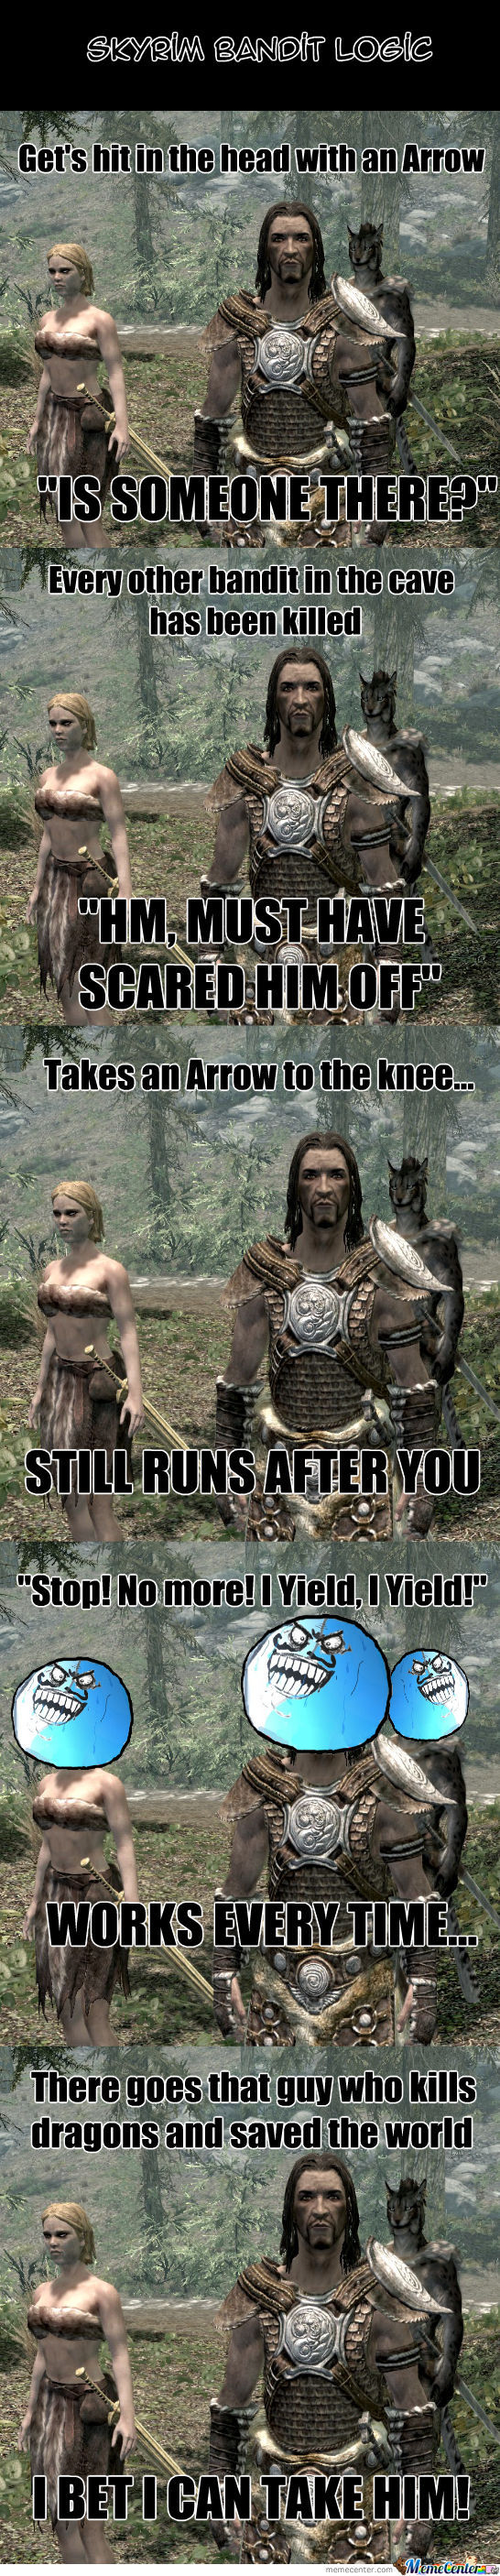 One Does Not Simply, Understand Bandit Logic